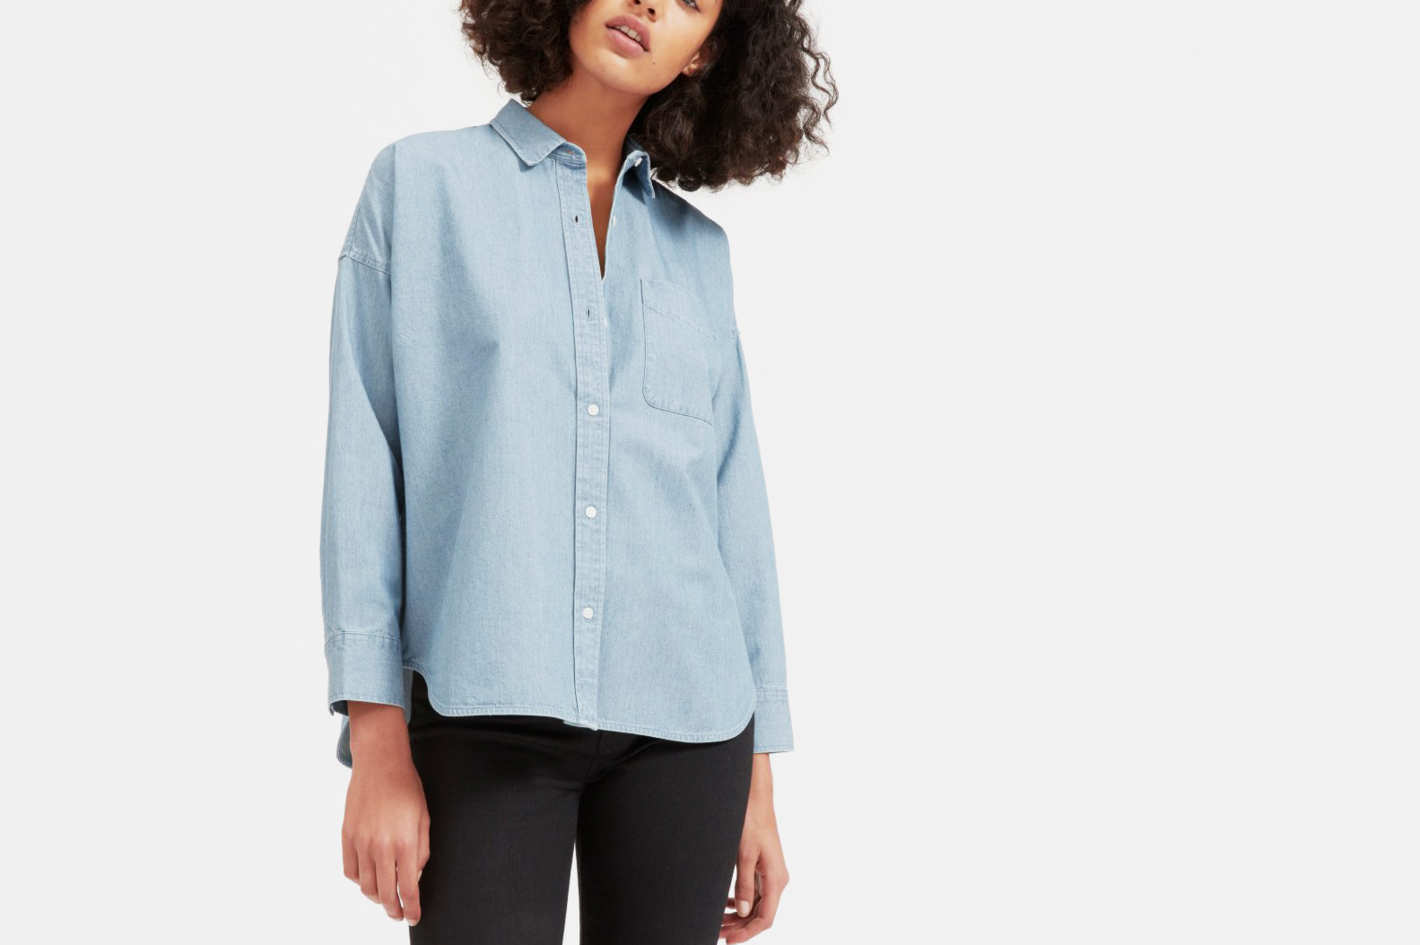 Everlane Square Jean Shirt